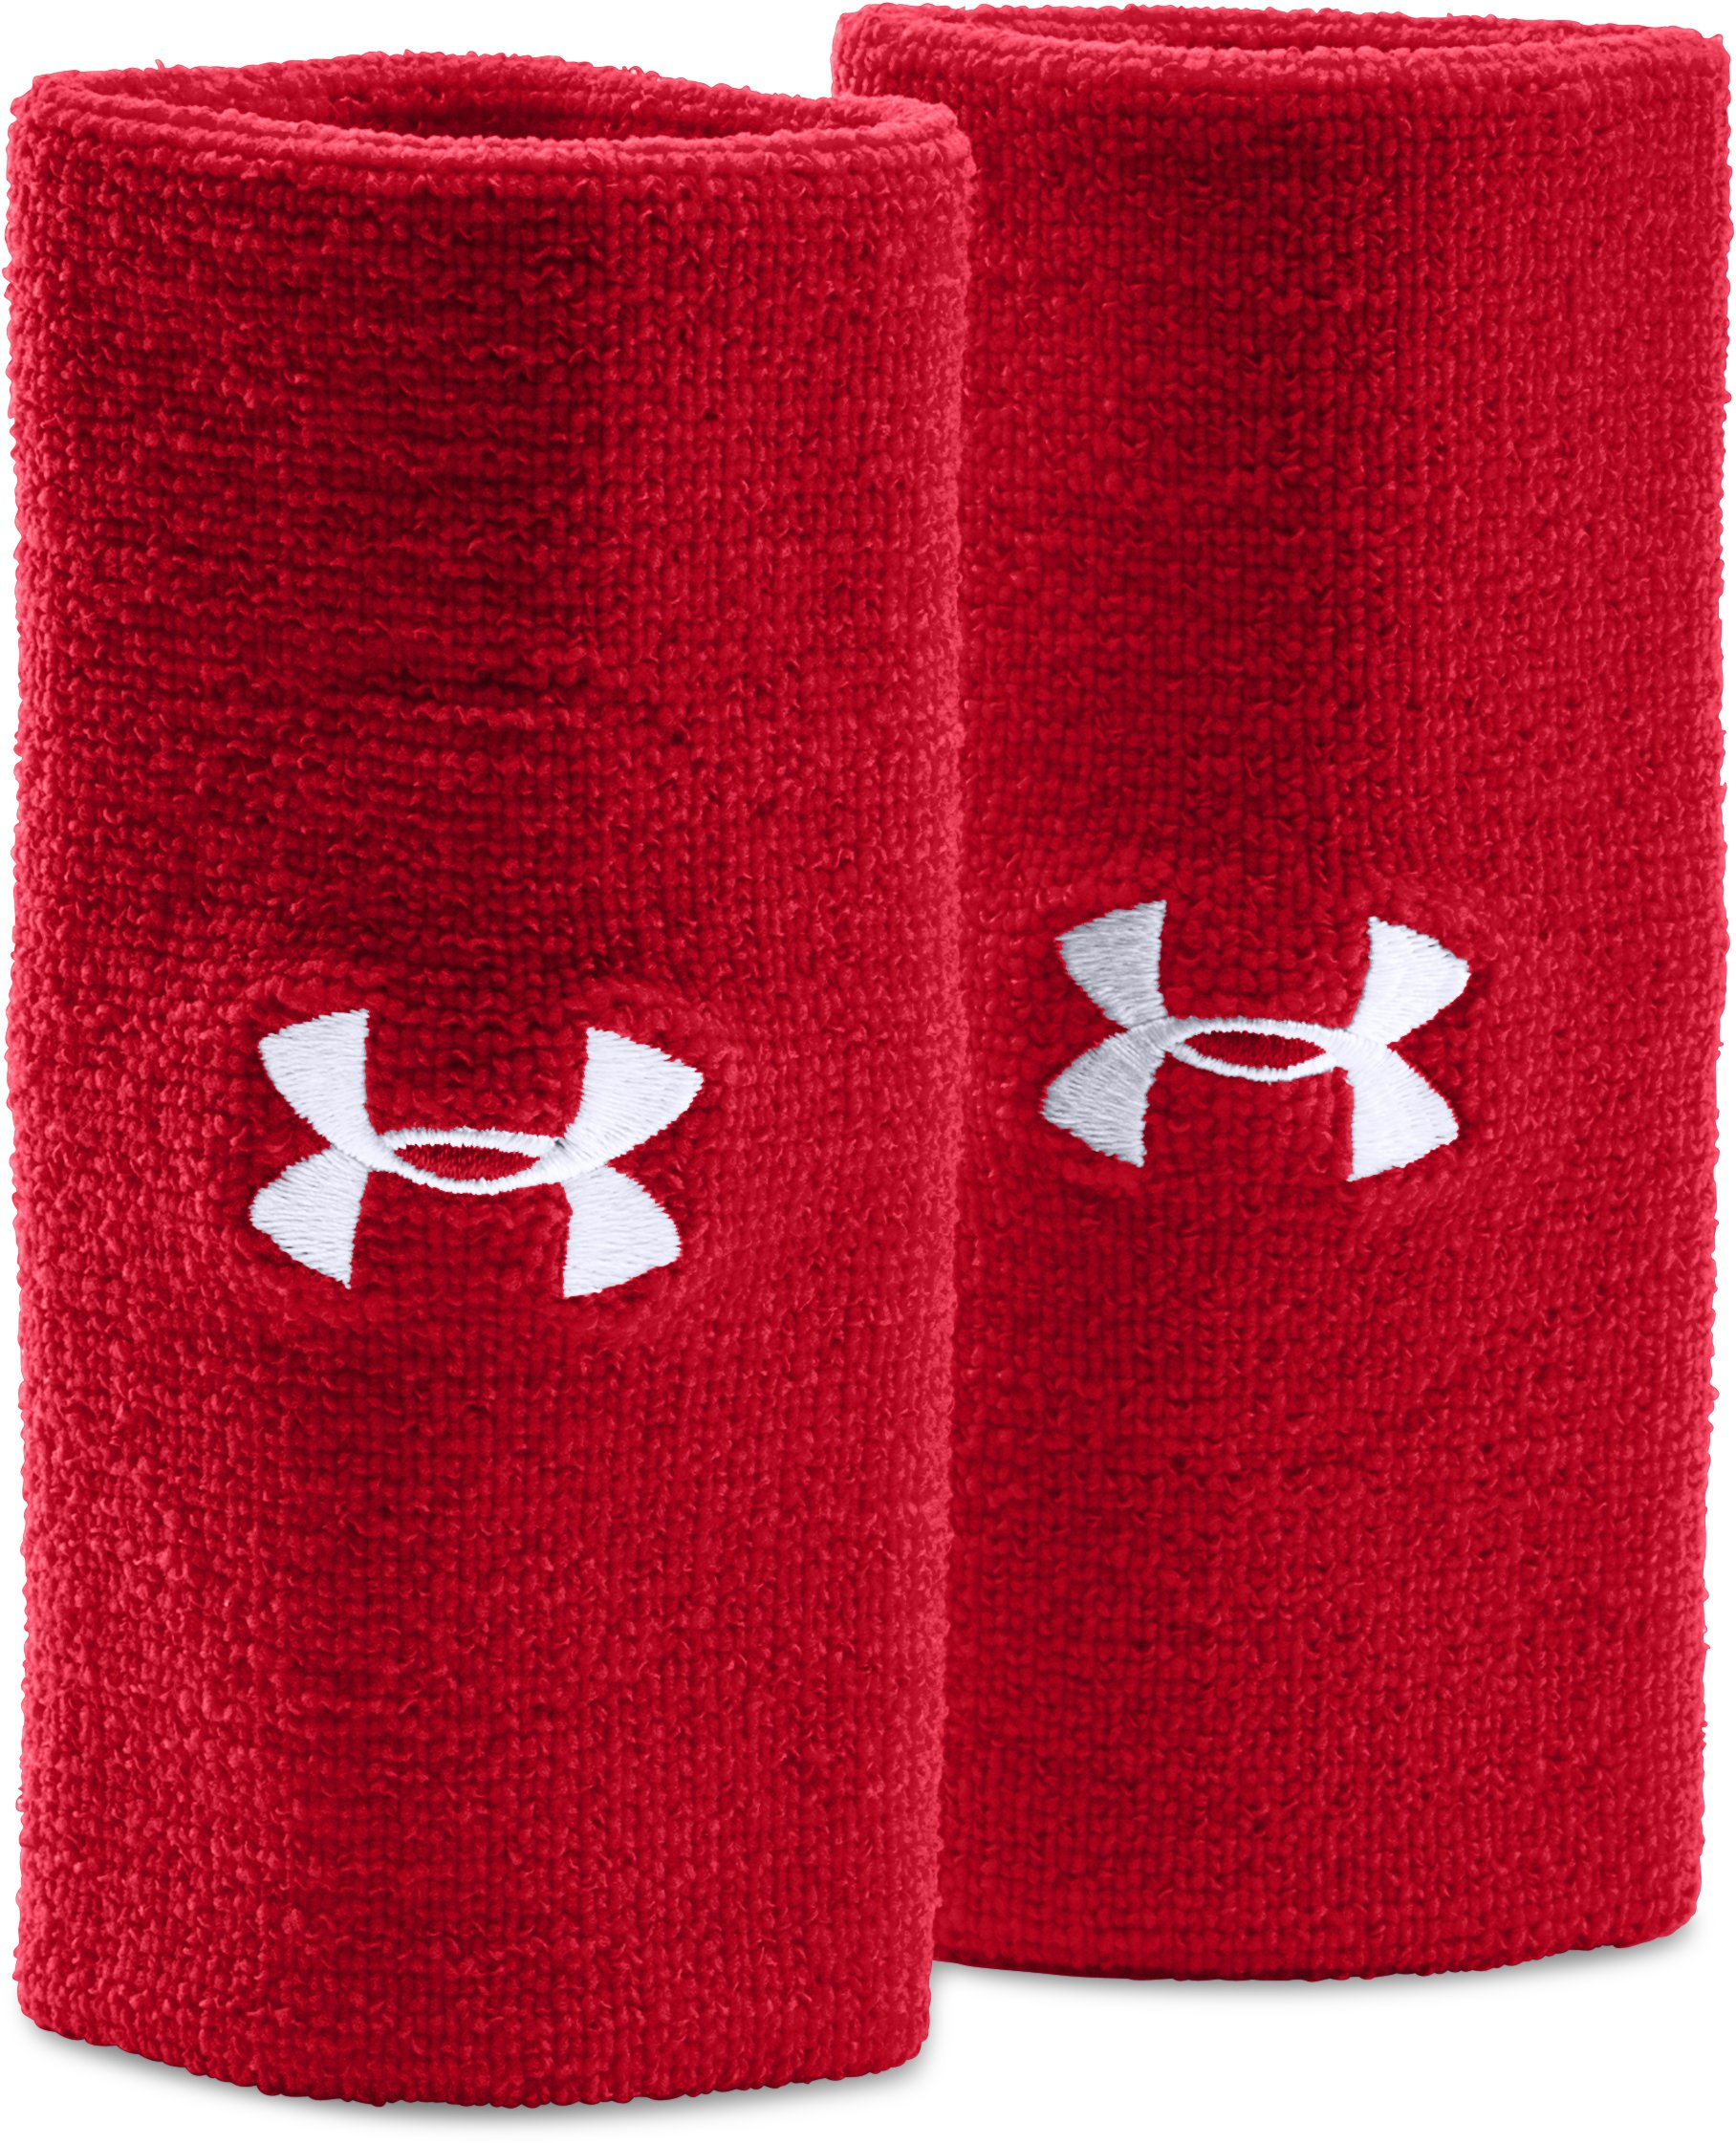 "red wristbands 6"" UA Performance Wristband 2-Pack Great sweat bands...Washes up just fine....Perfect Choice!"